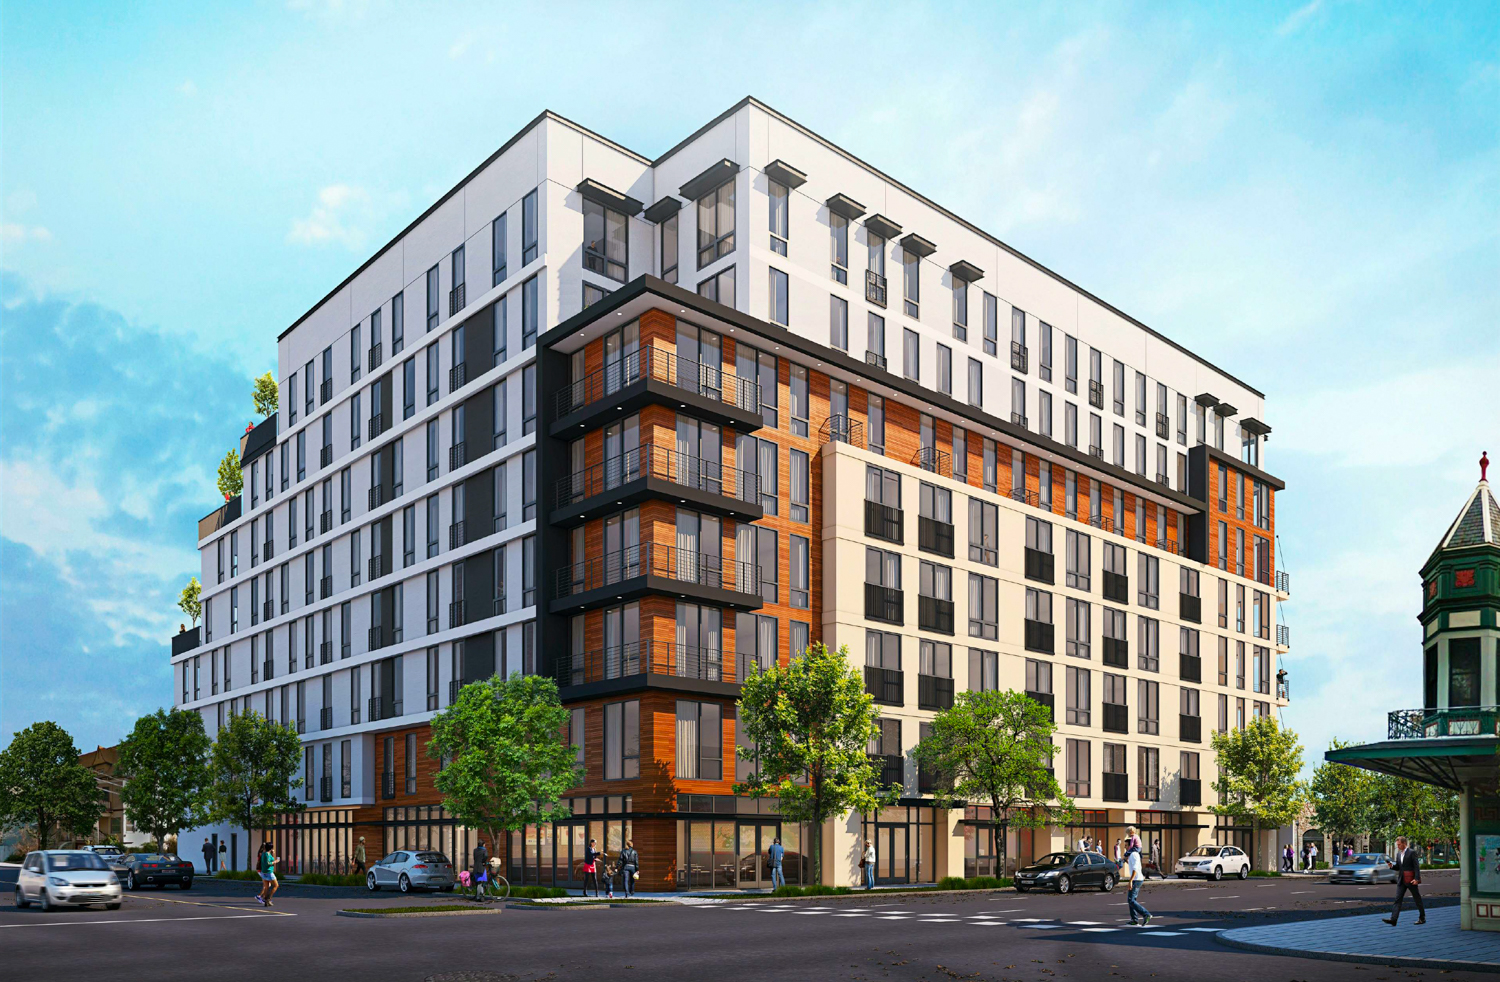 Cascade at 1705 I Street 17th & I Street view, design by HRGA Architecture